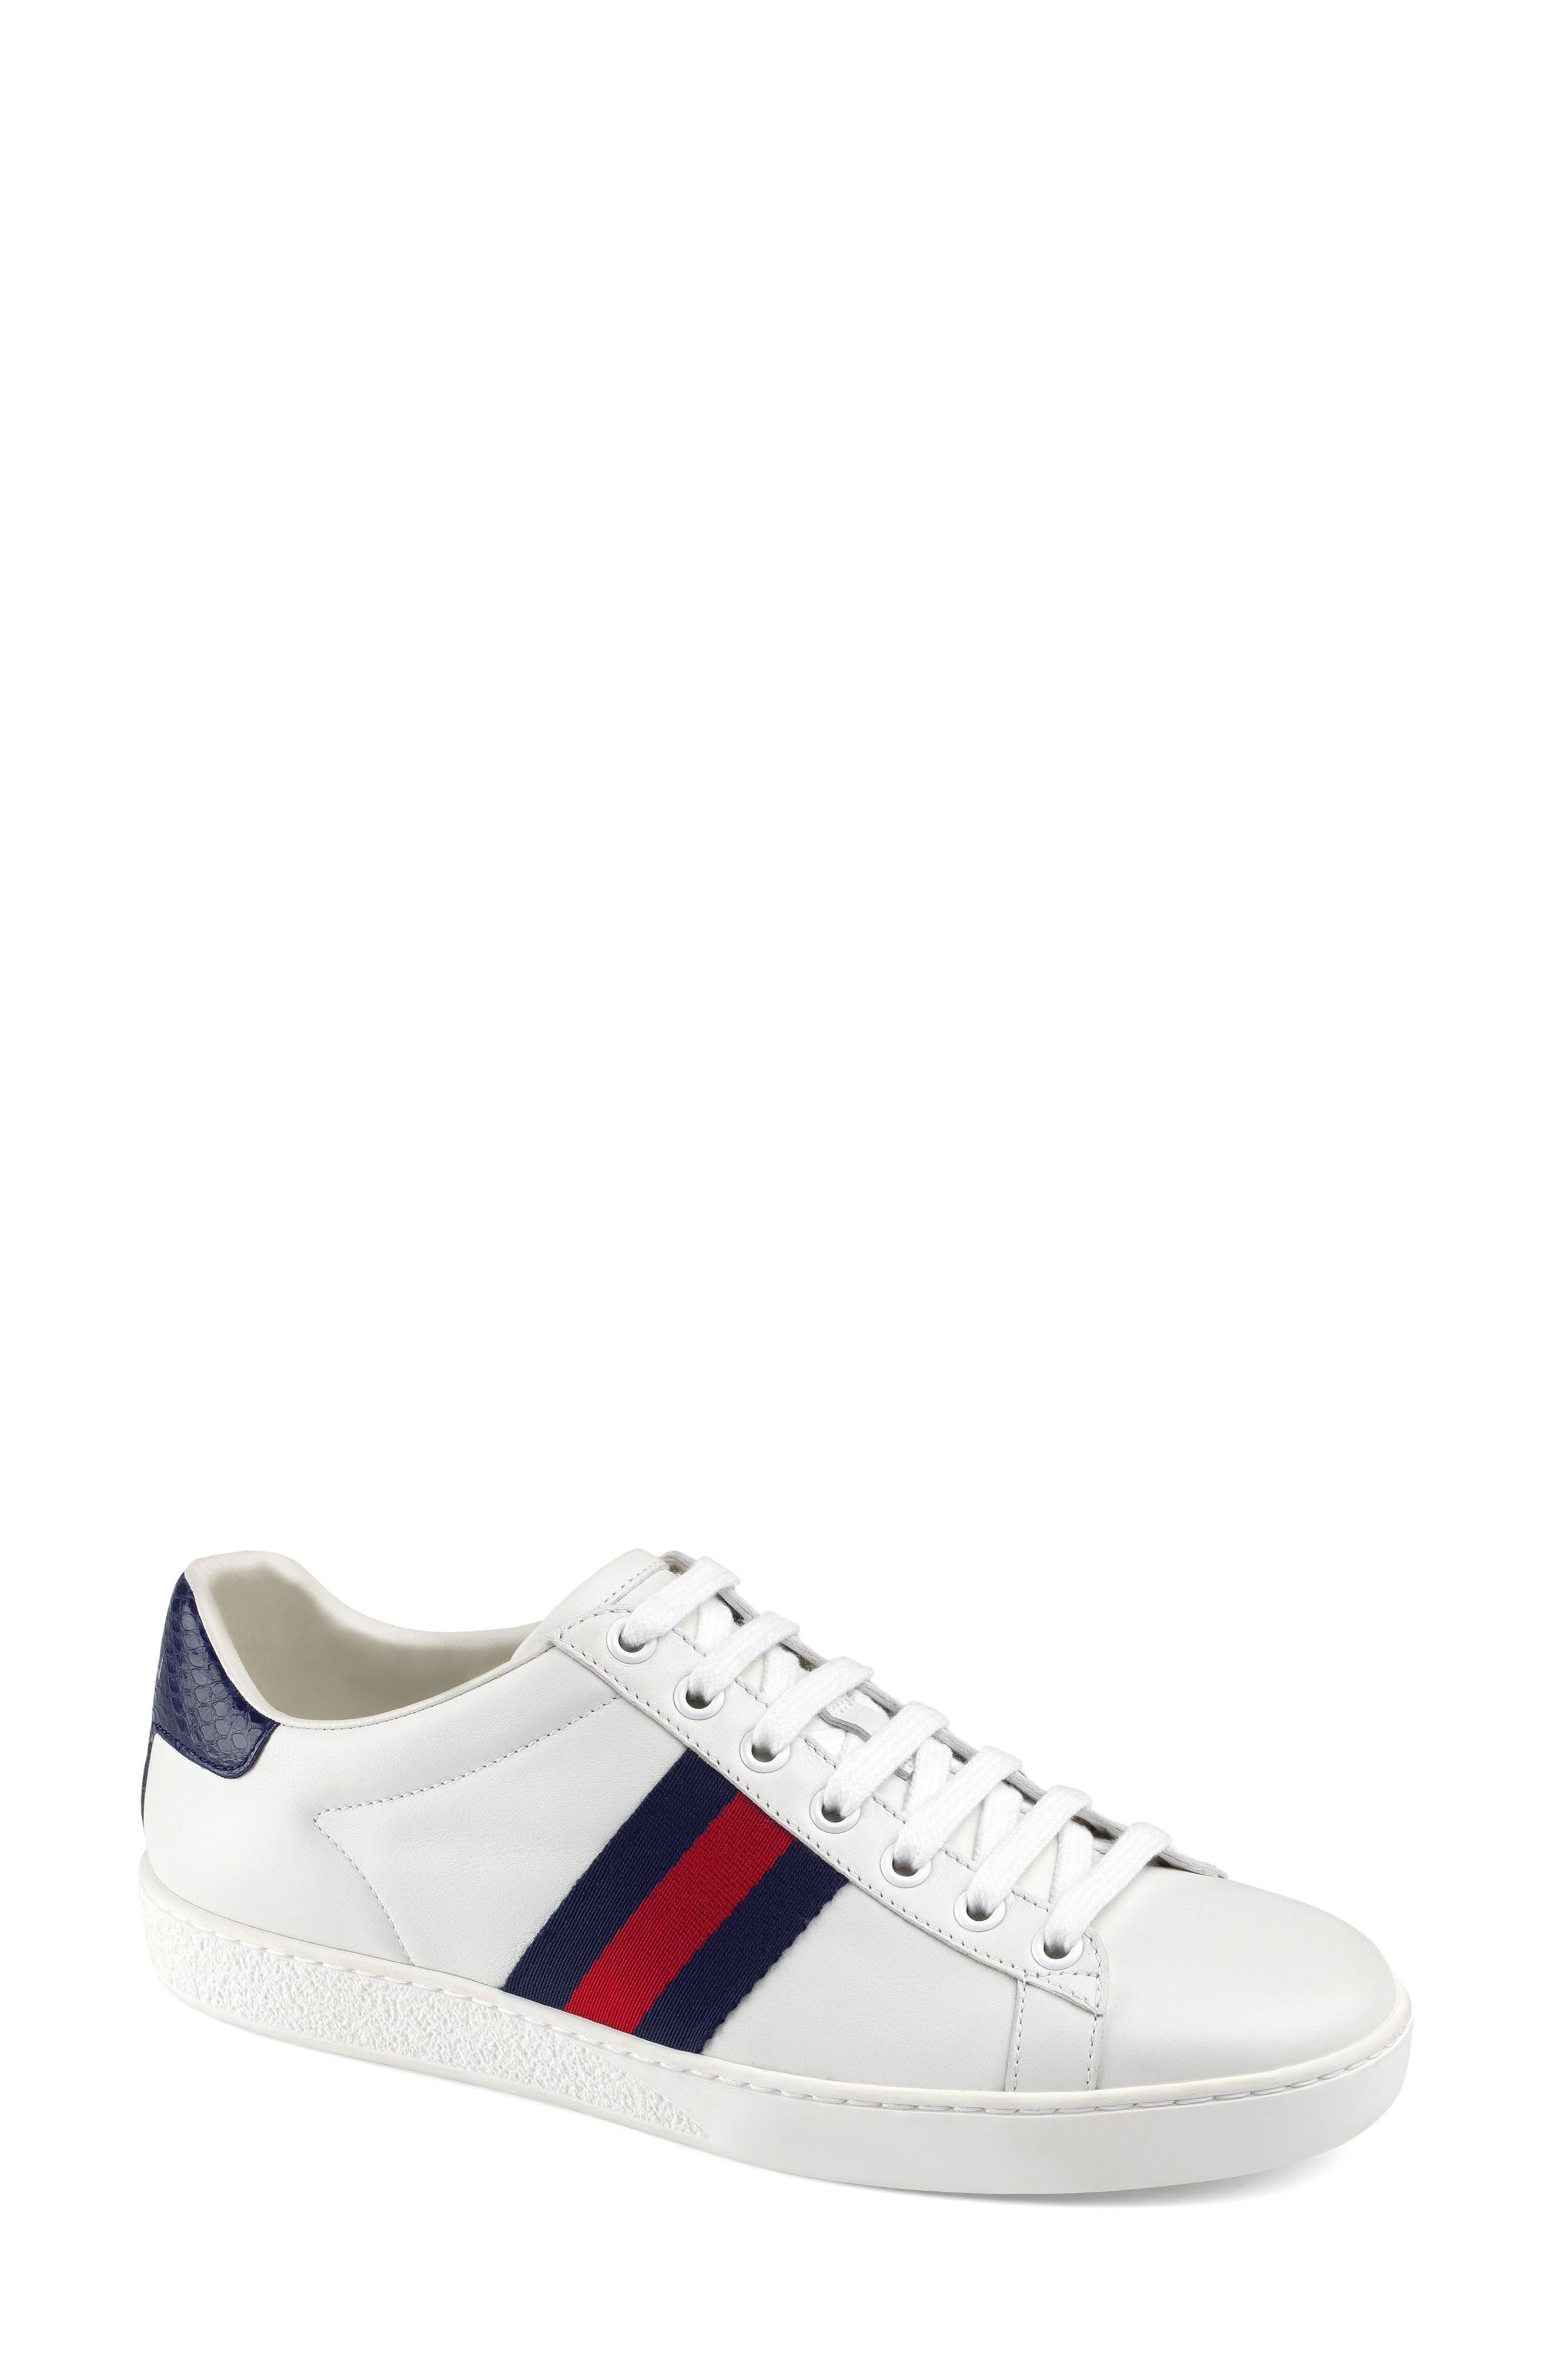 GUCCI,                             'New Ace' Sneaker,                             Main thumbnail 1, color,                             101